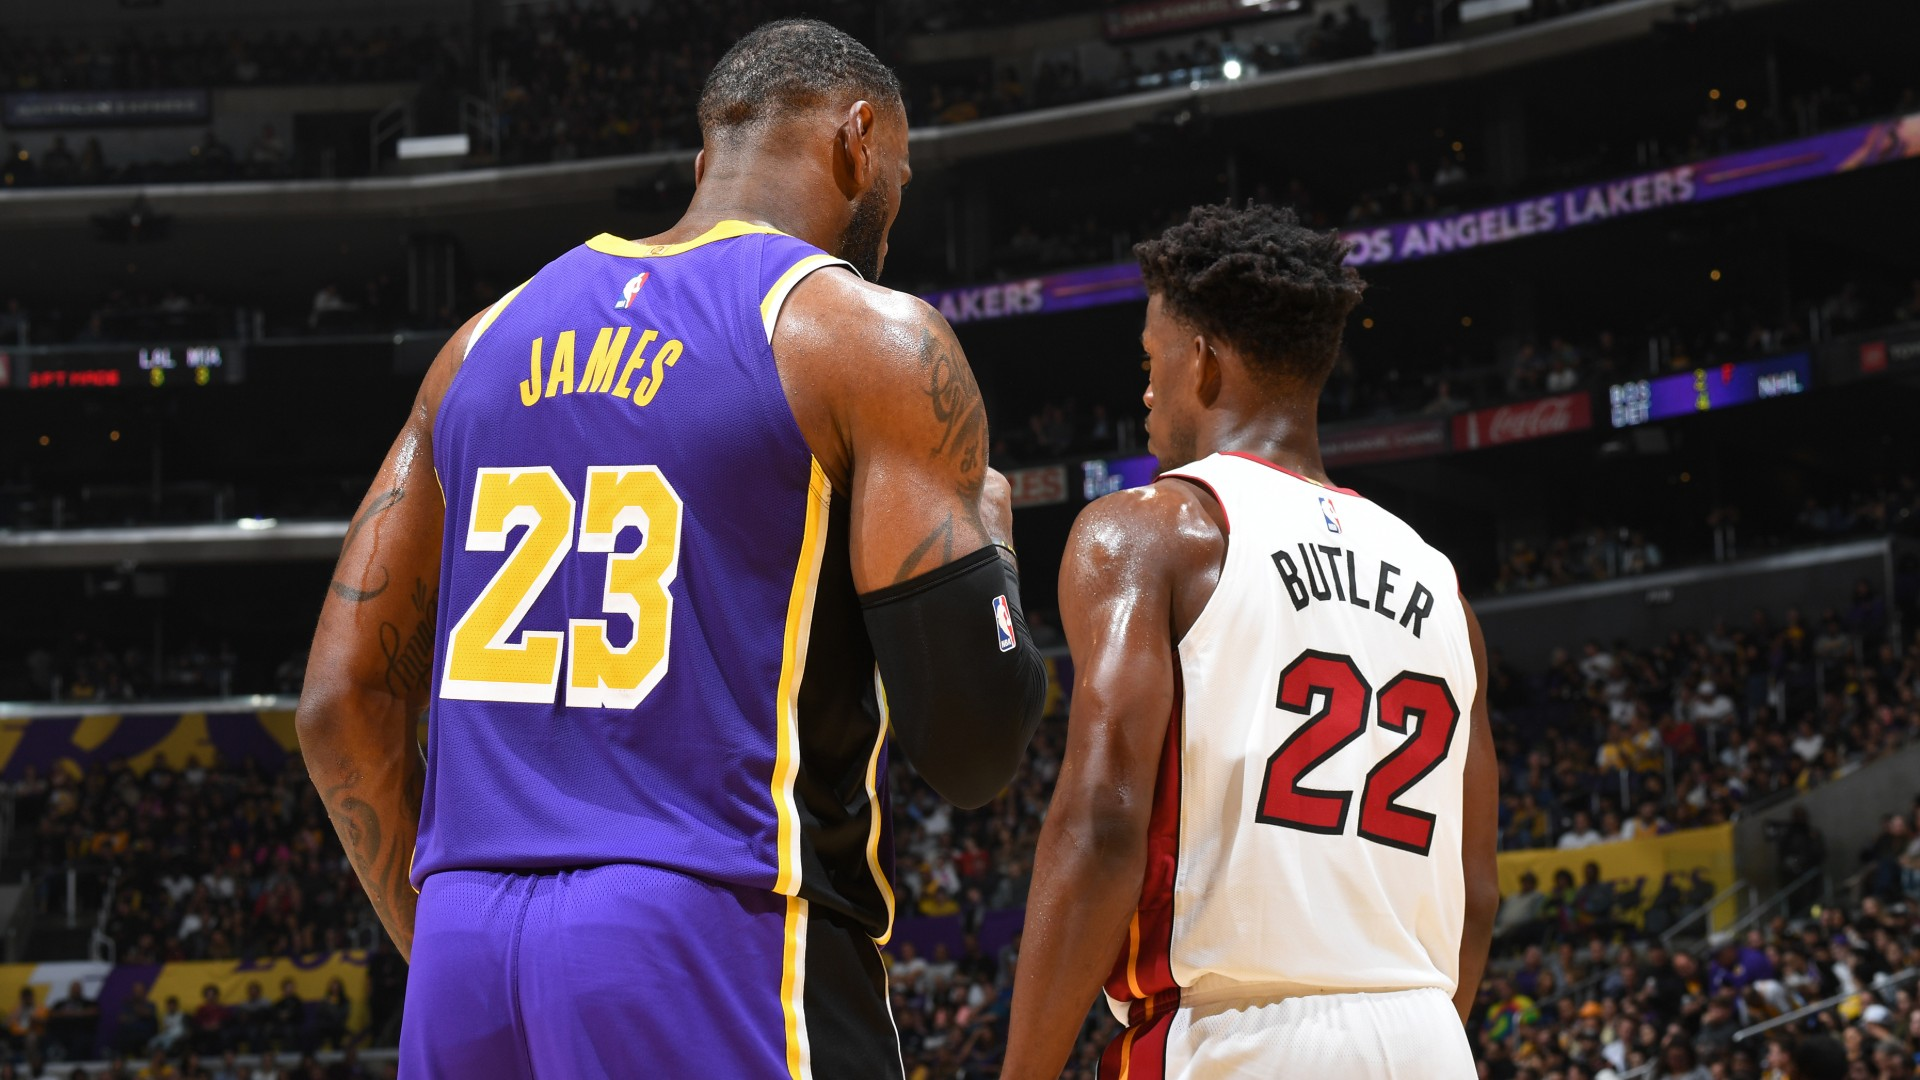 Nba Finals 2020 Los Angeles Lakers Vs Miami Heat Series Preview Nba Com Australia The Official Site Of The Nba